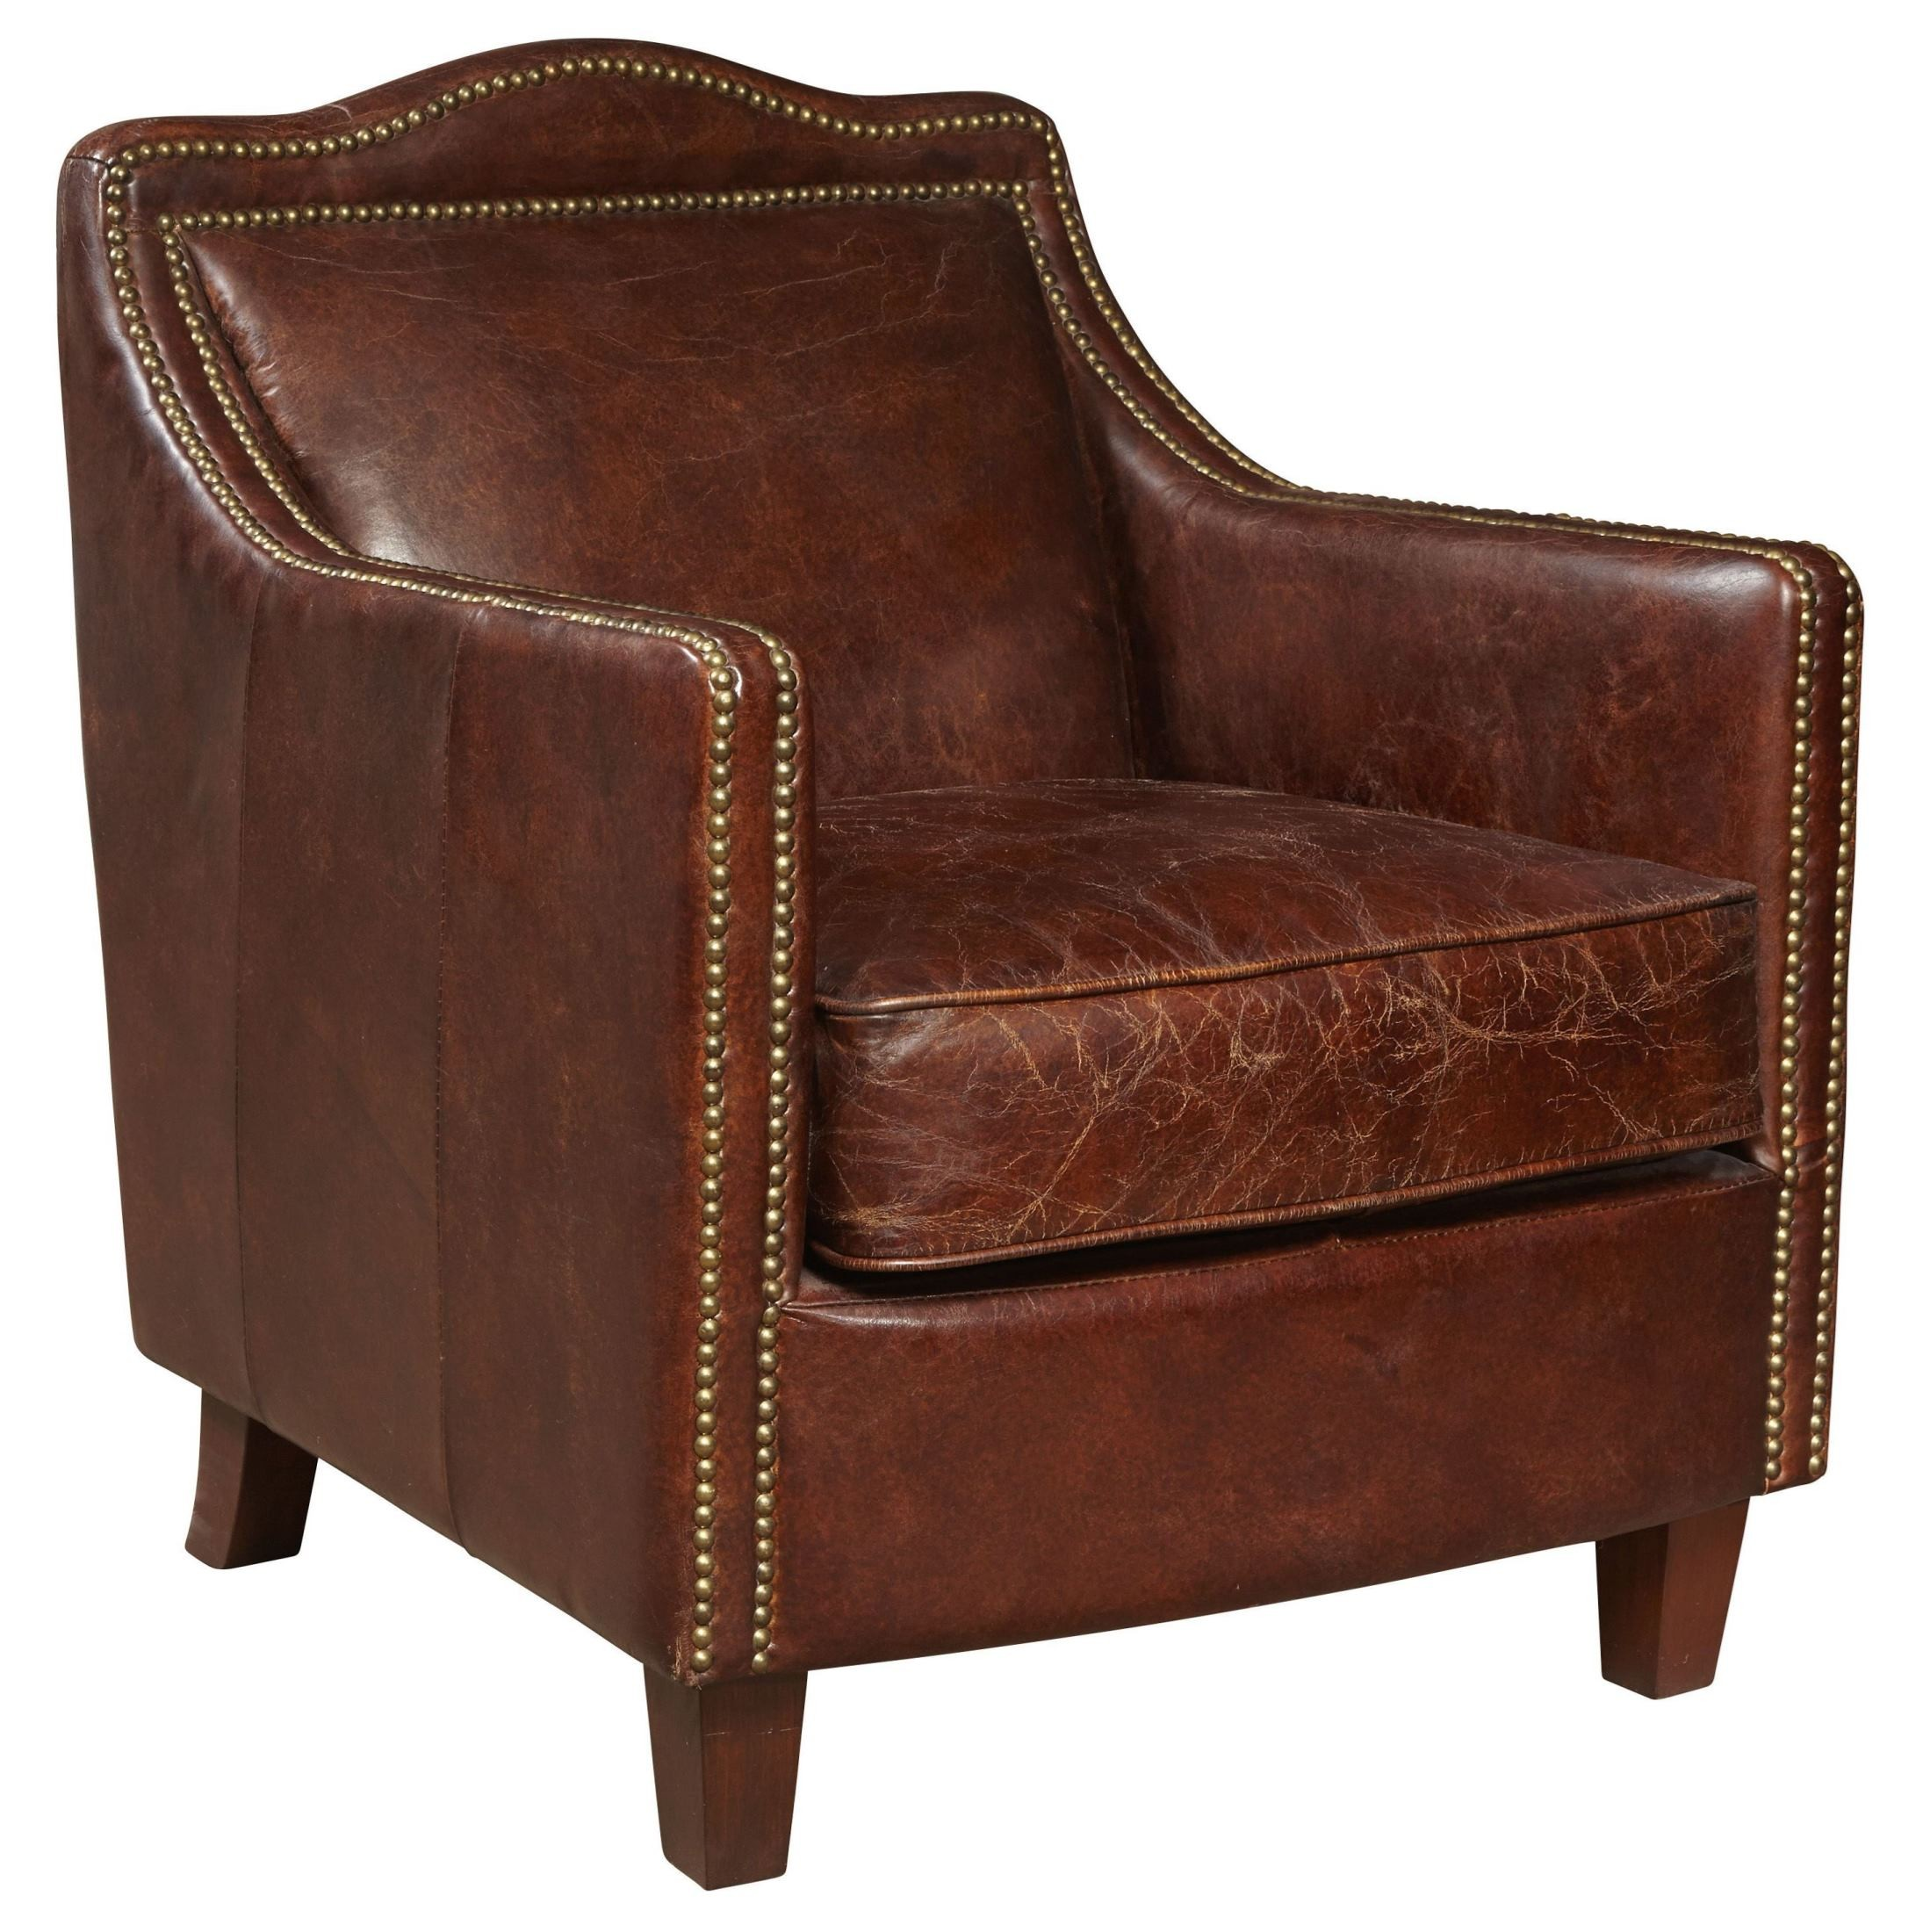 Tan Accent Chair Danielle Brown Leather Accent Chair From Pulaski Coleman